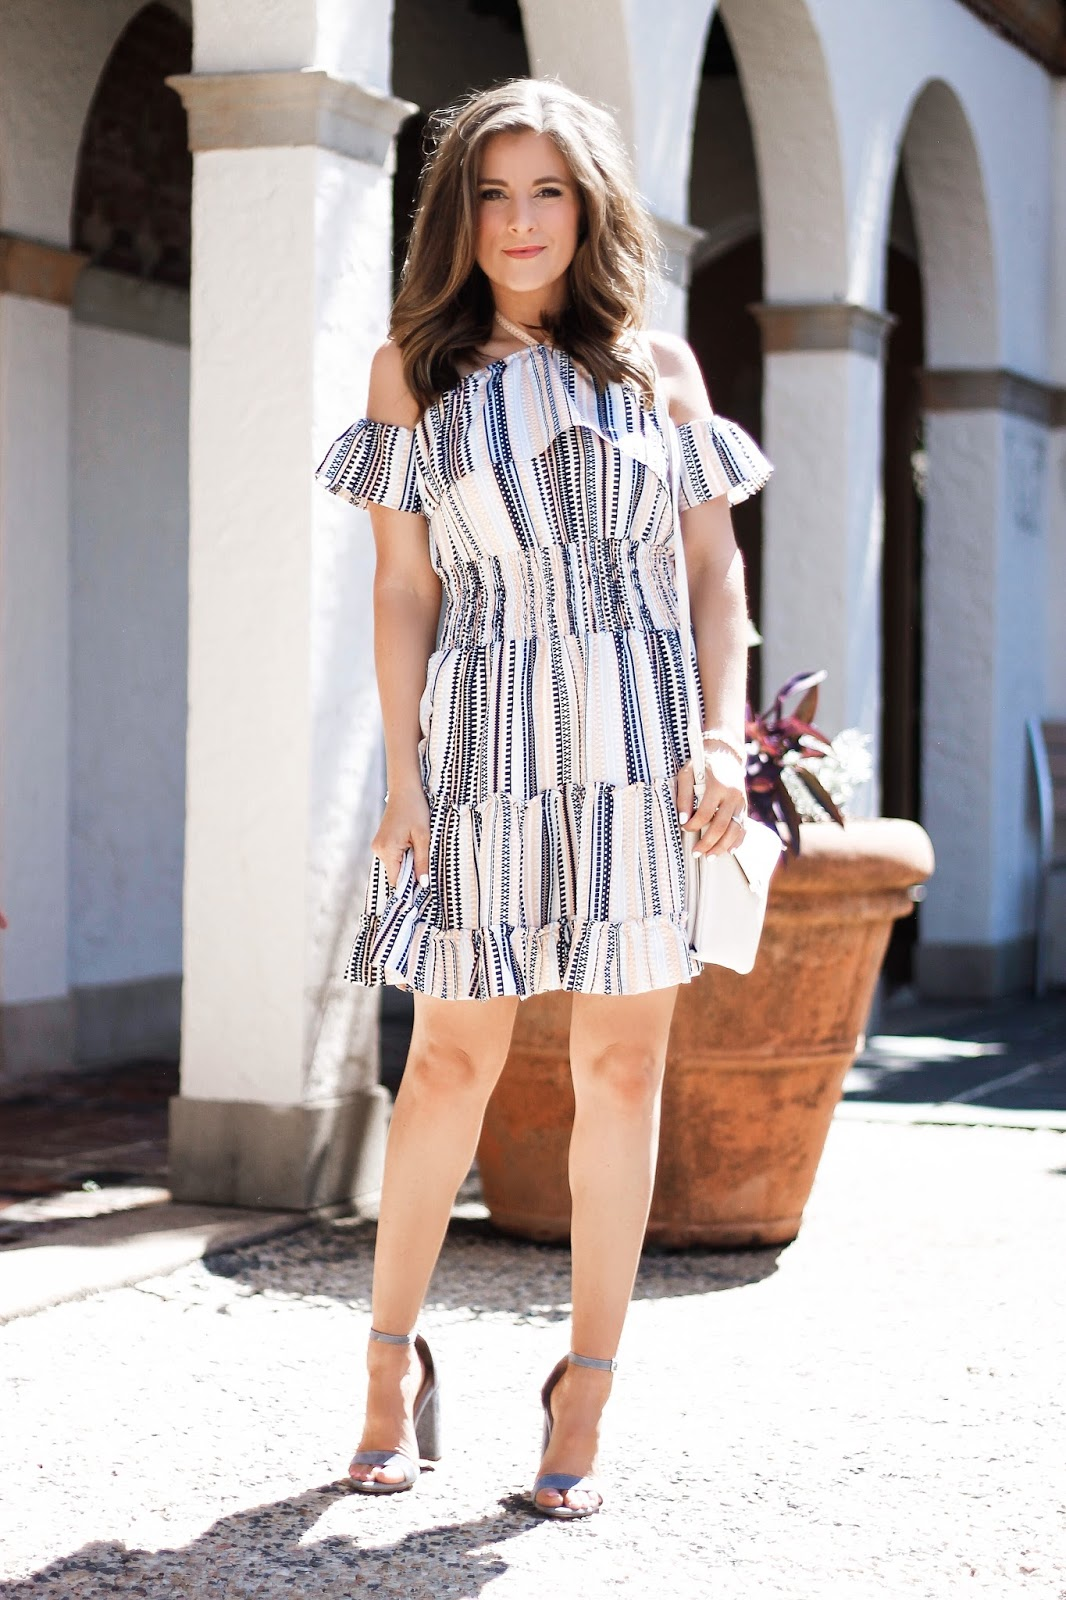 The Best Summer Dresses... | The Dainty Darling